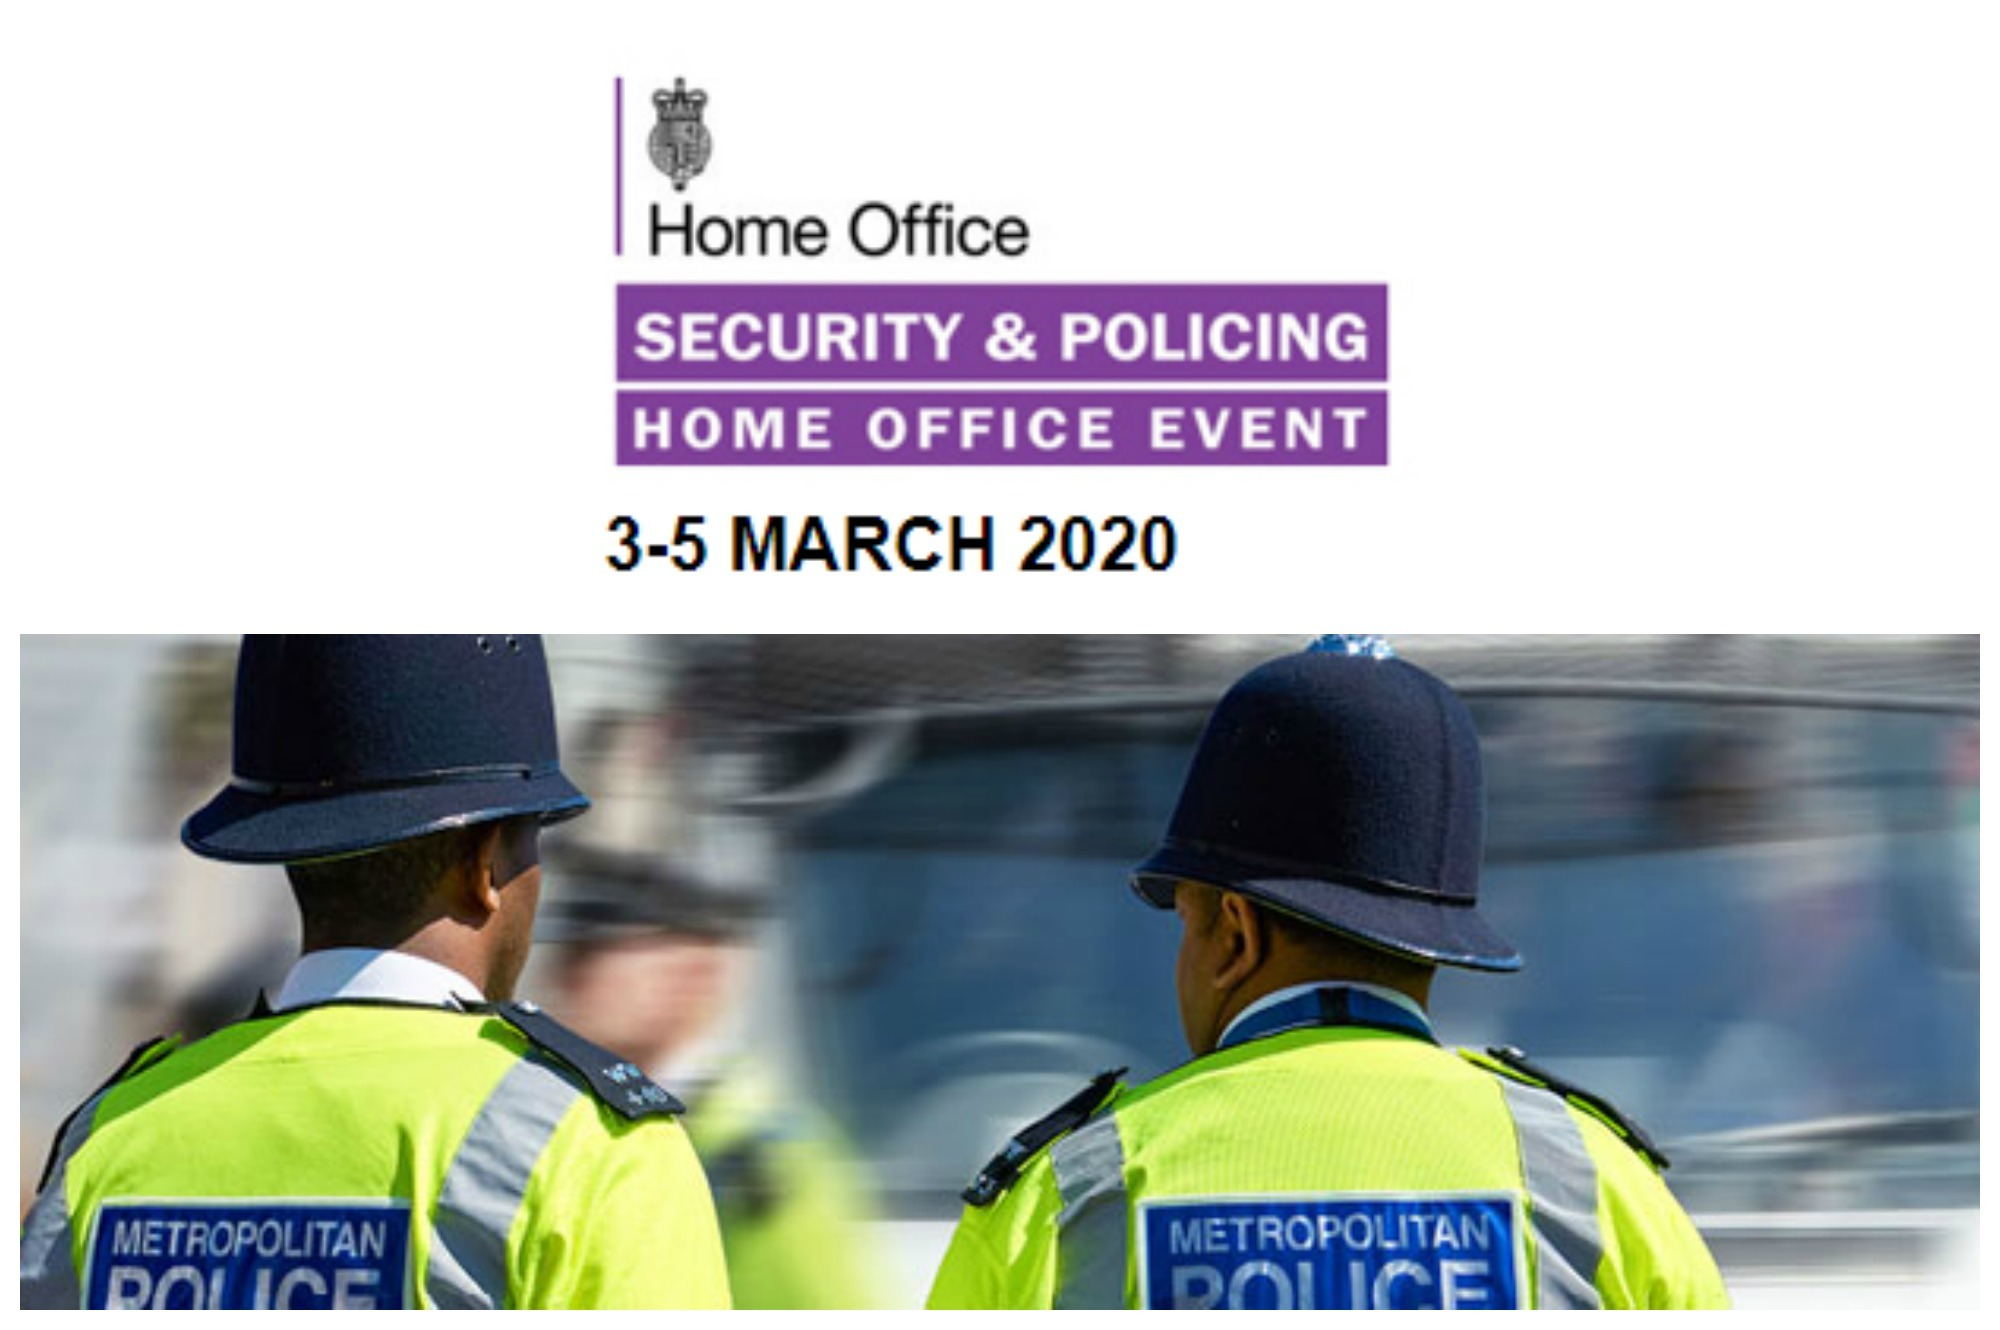 Security & Policing Home Office Event, where technology and innovation meet...